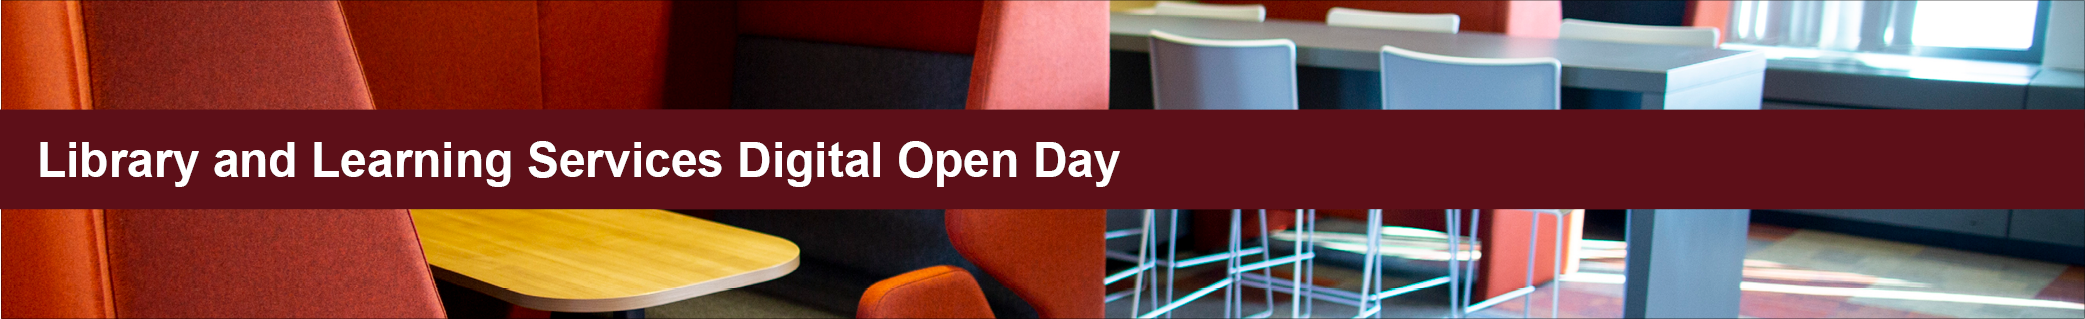 Library and Learning Services DIgital Open Day